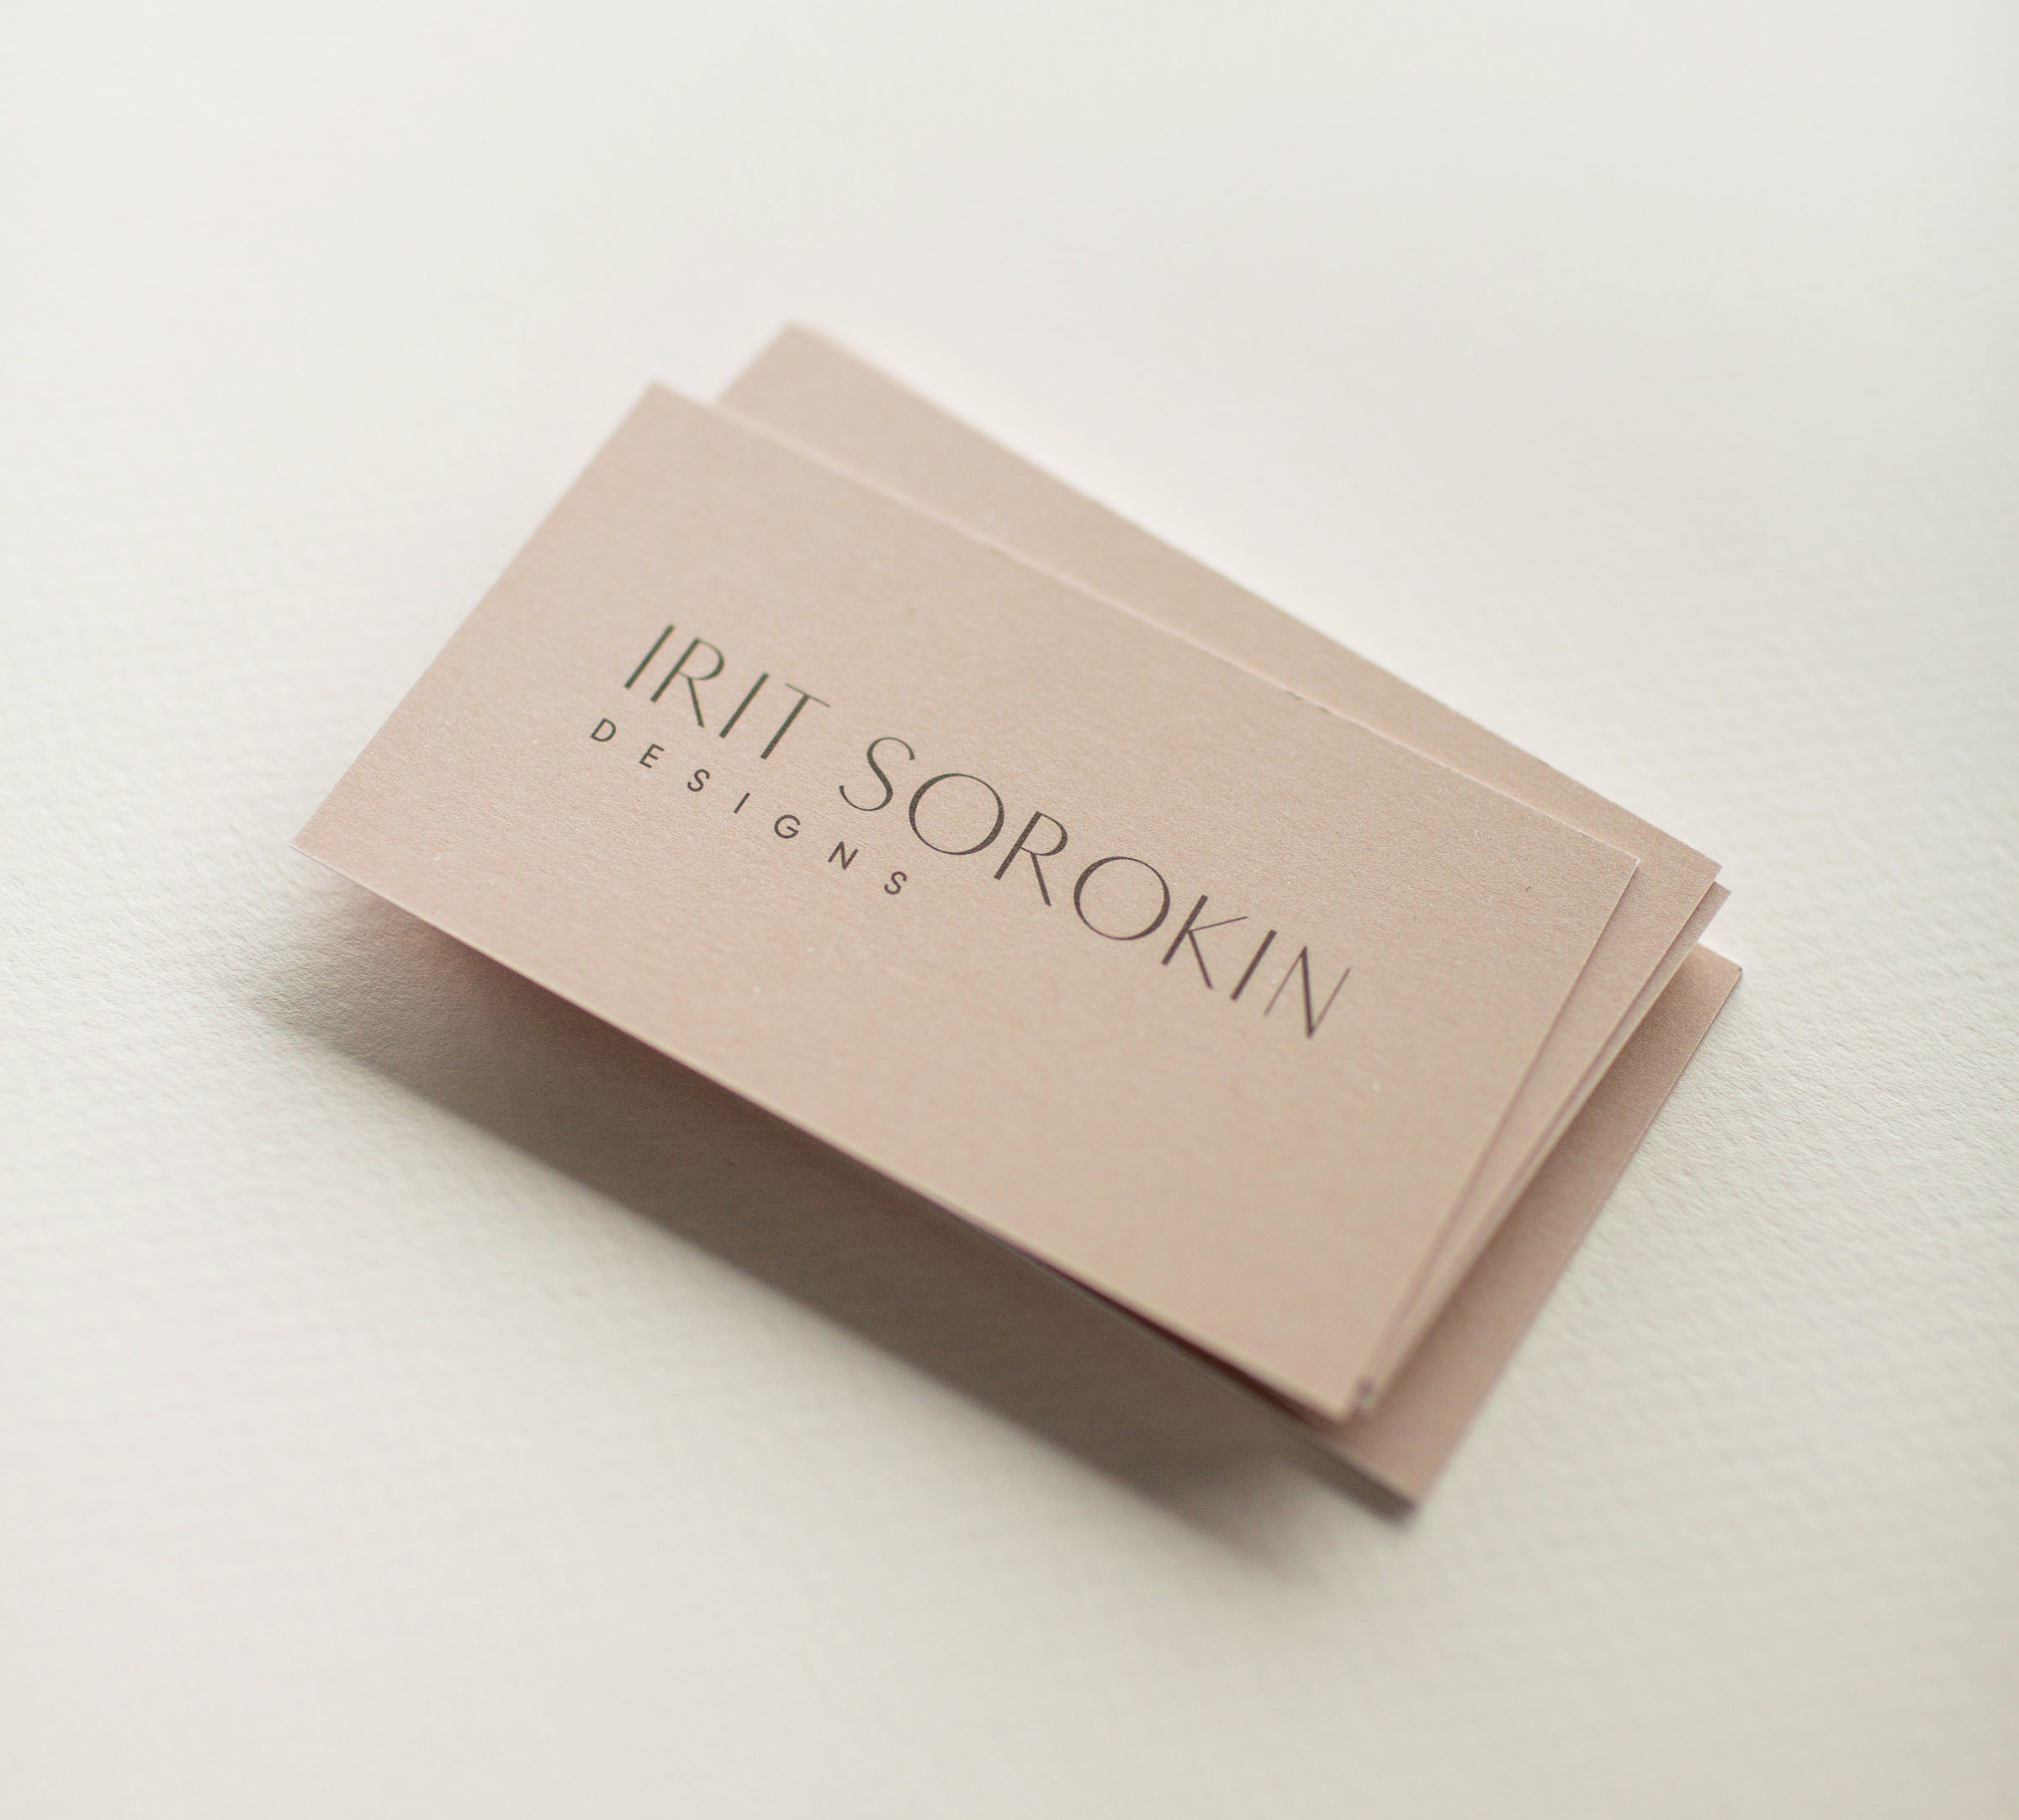 Irit Sorokin Branding and Business Card Design | www.alicia-carvalho.com